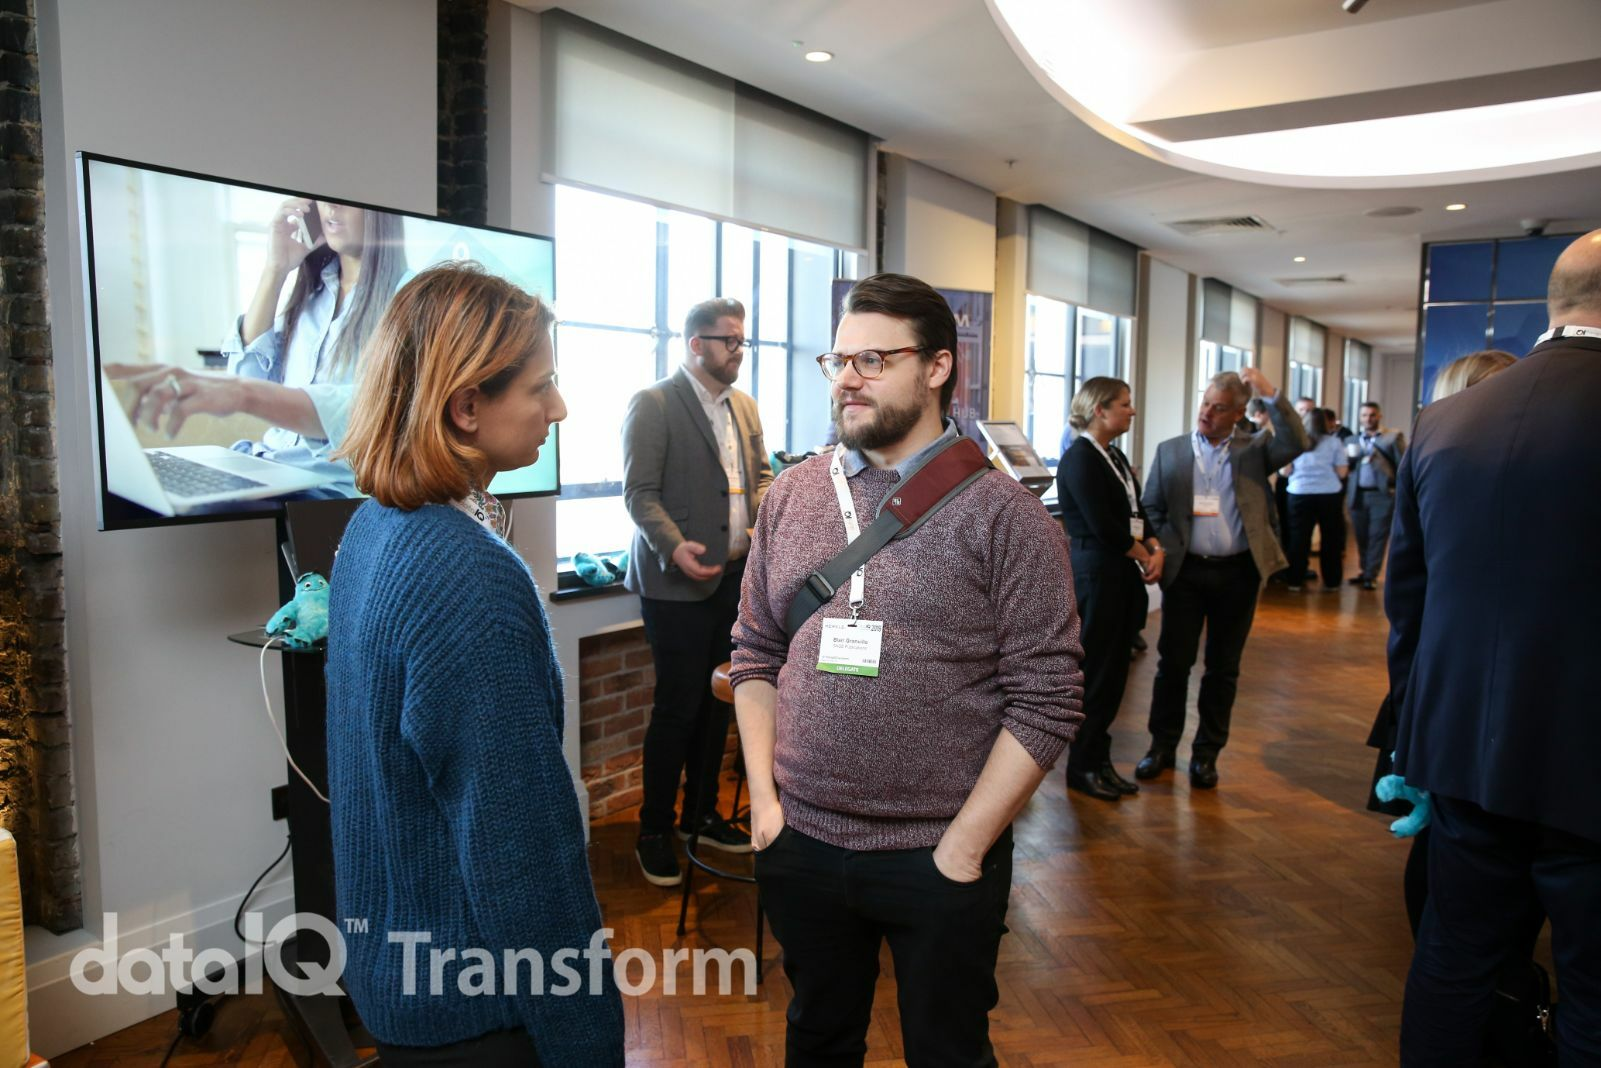 DataIQ Transform 2019 Image 32